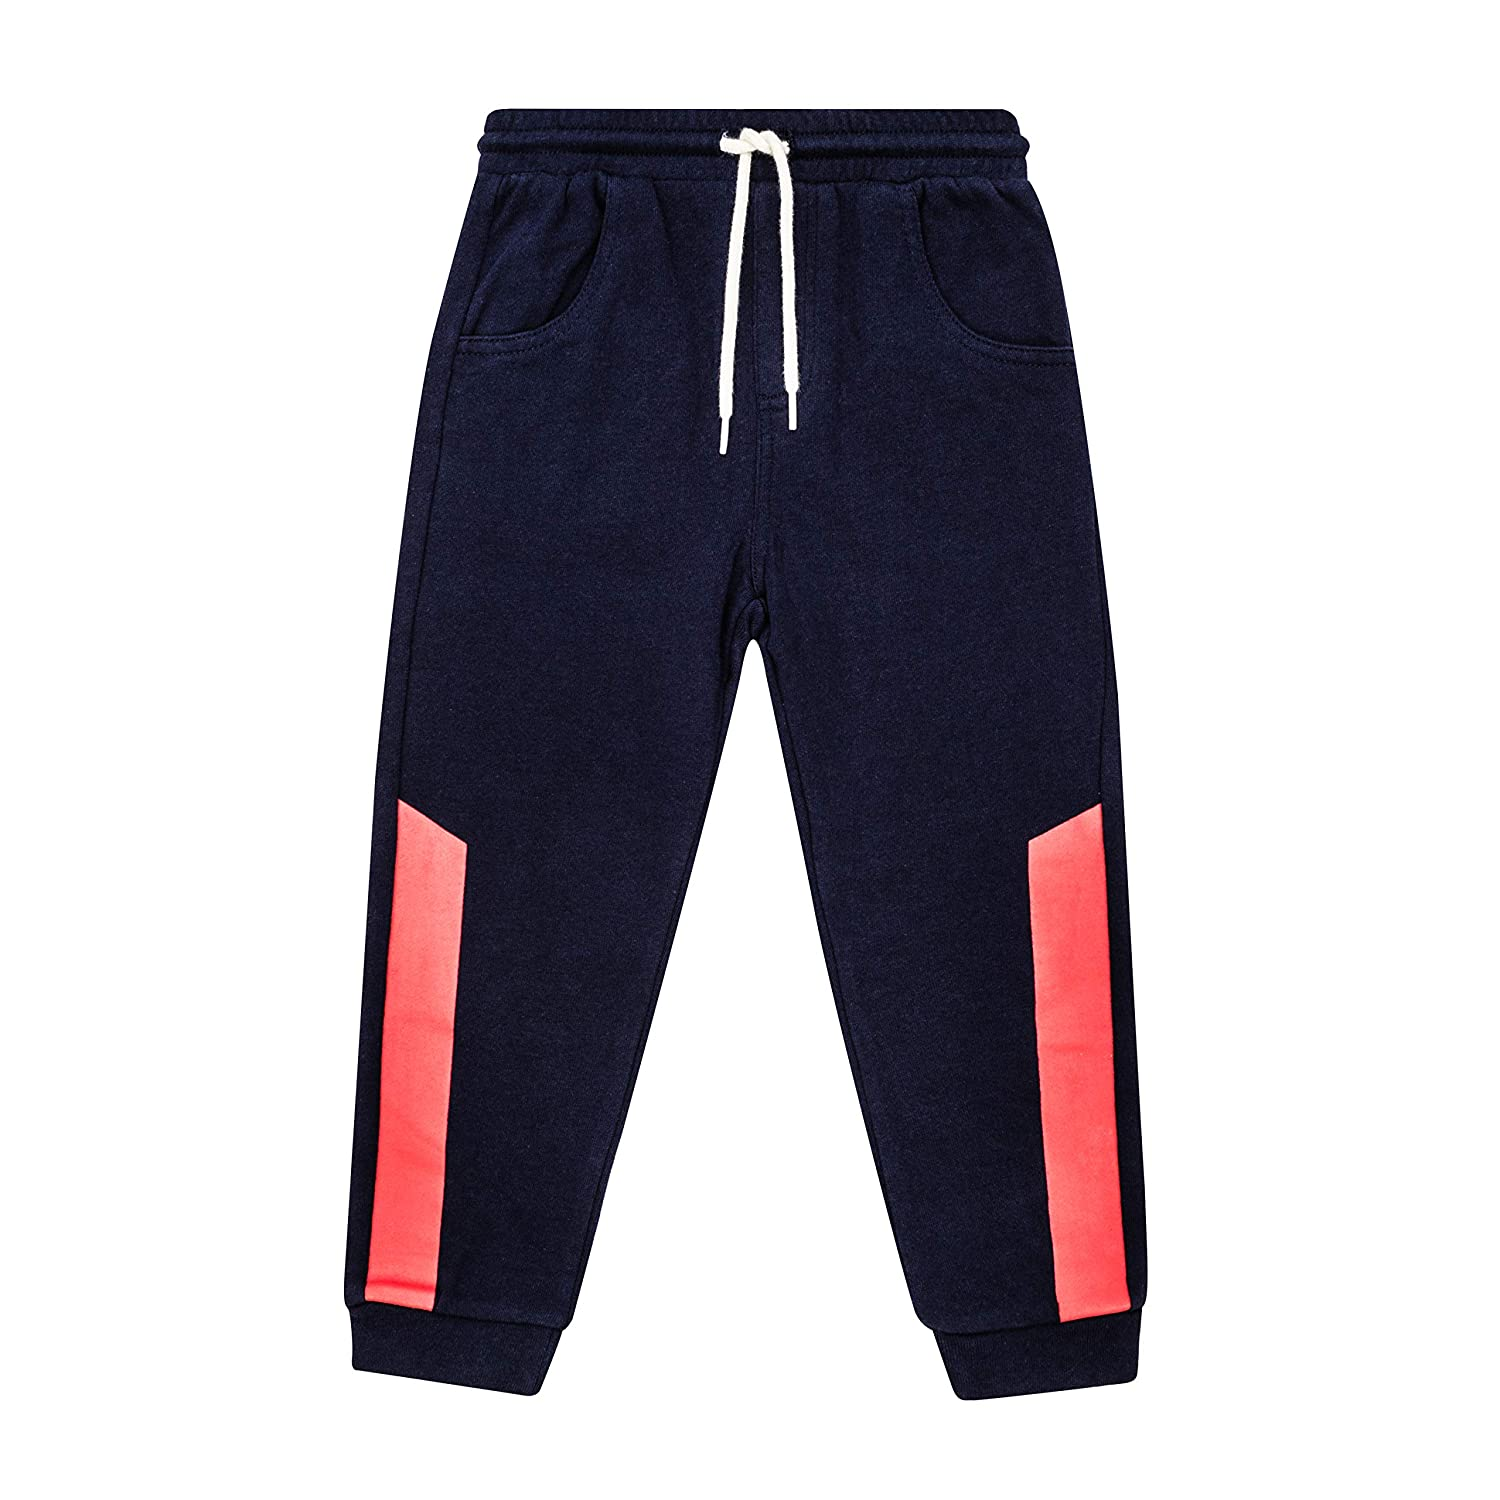 Stylish and Fun Petit Lem Big Pants for Boys